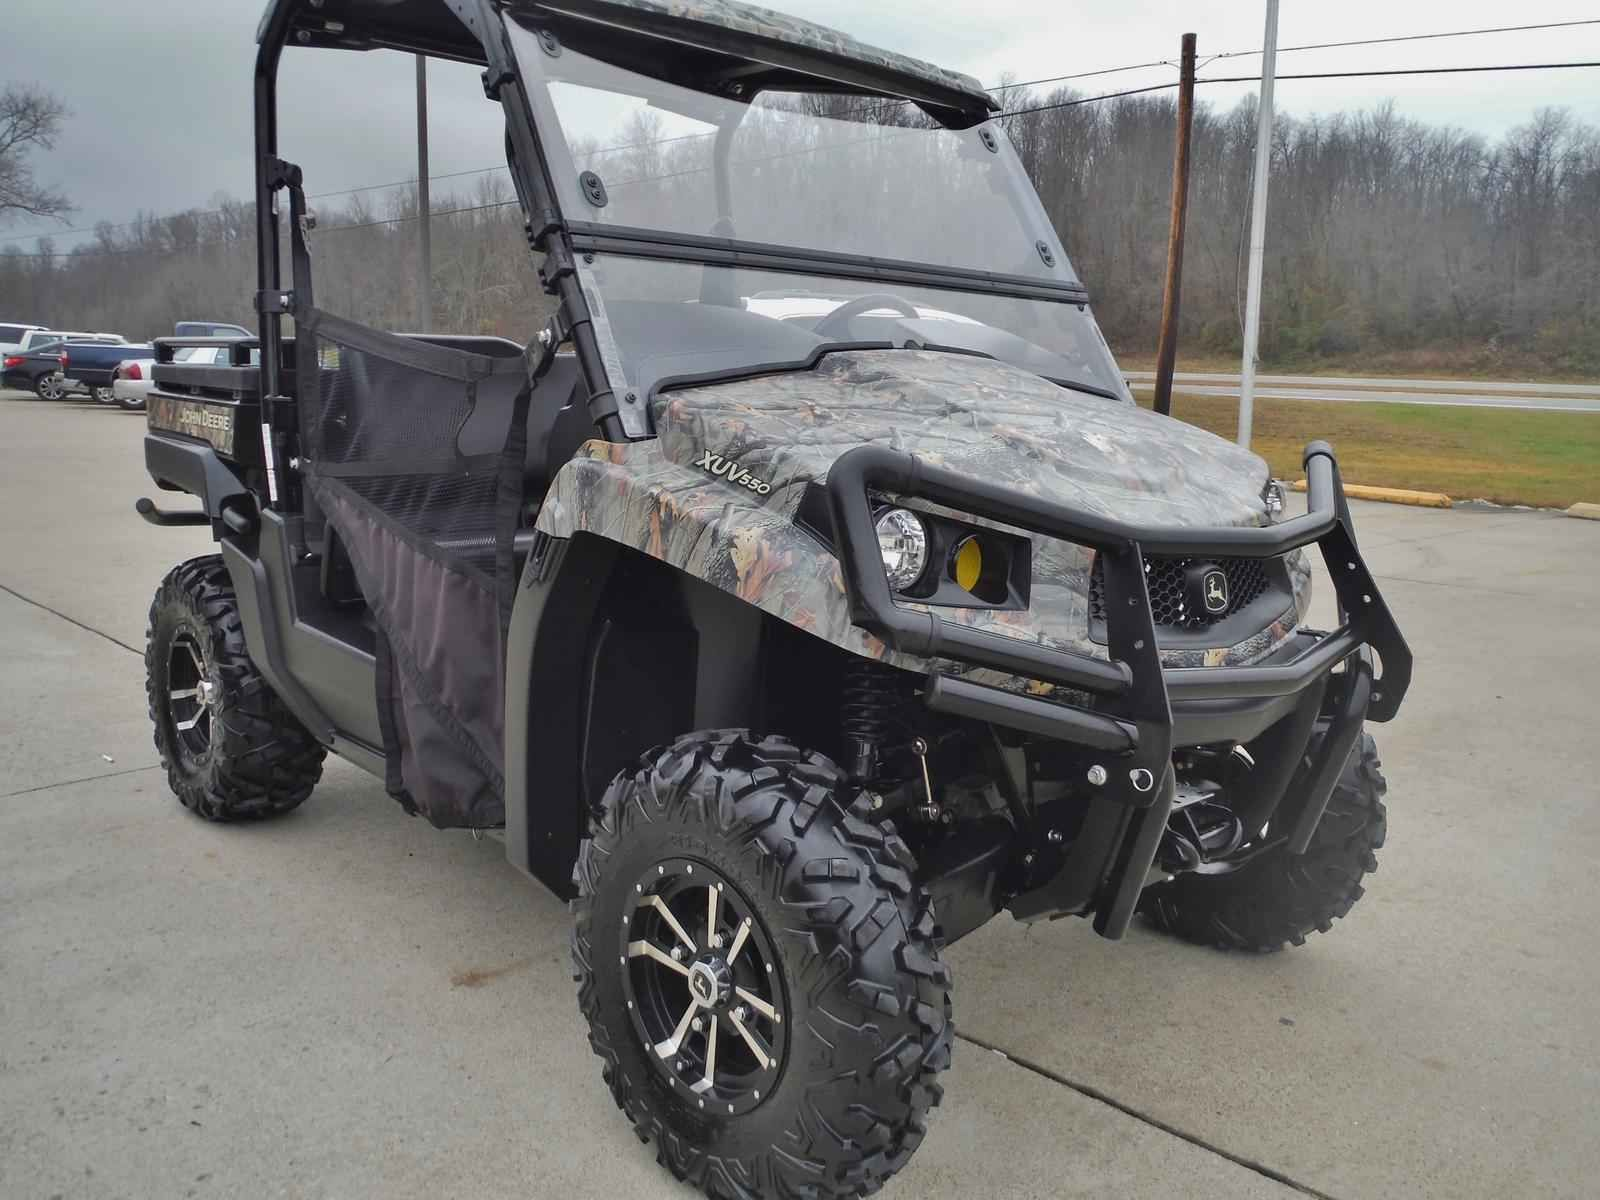 Used 2014 John Deere Gator XUV 550 ATVs For Sale in Ohio 2014 JOHN